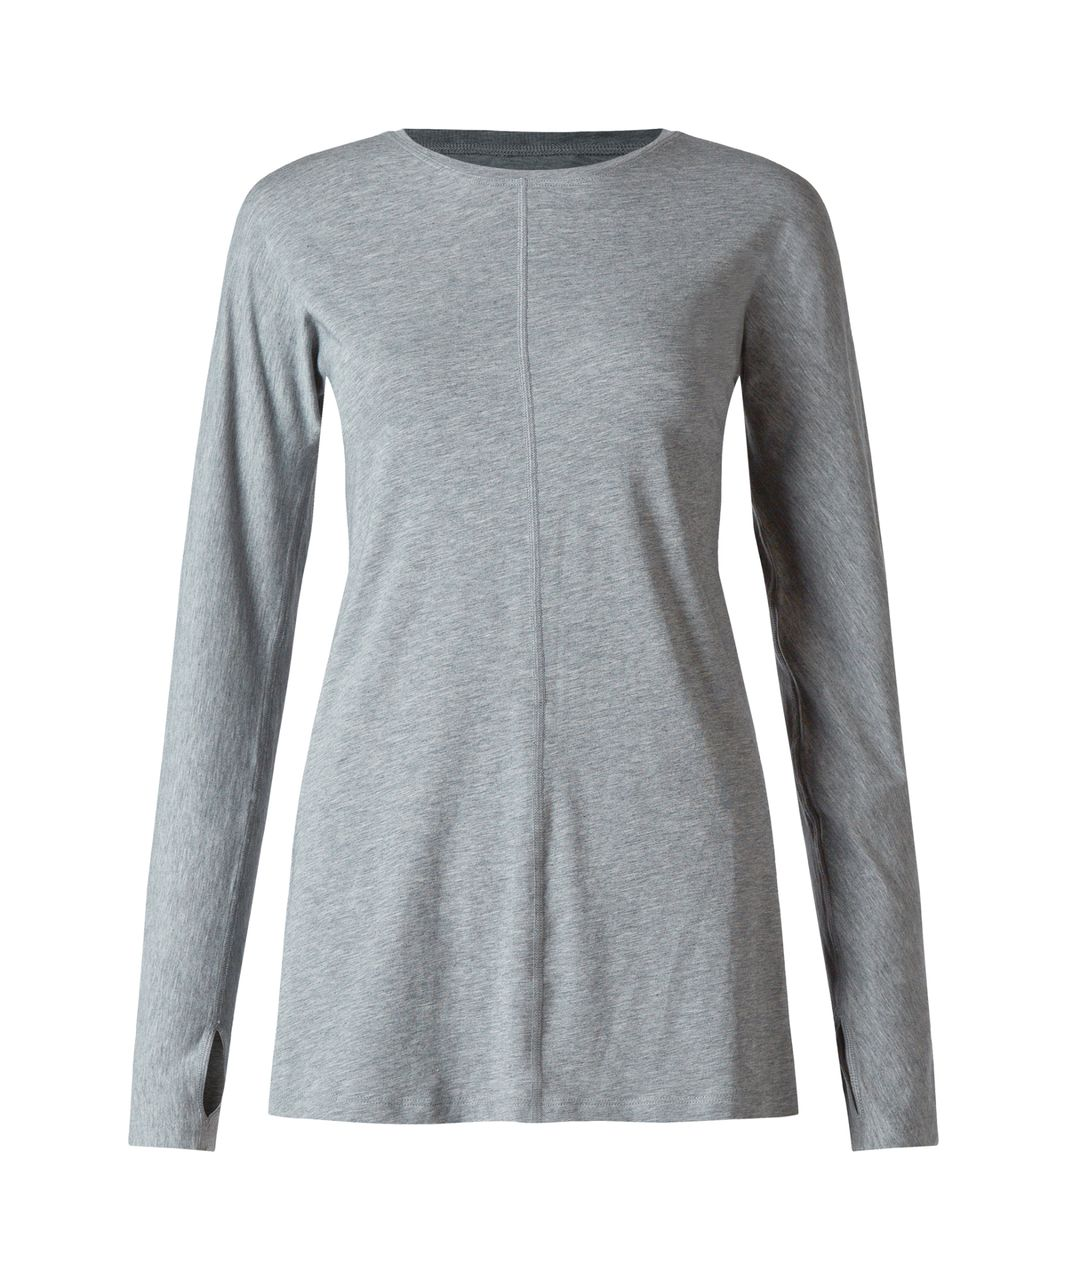 Lululemon Trapeze Long Sleeve - Heathered Medium Grey